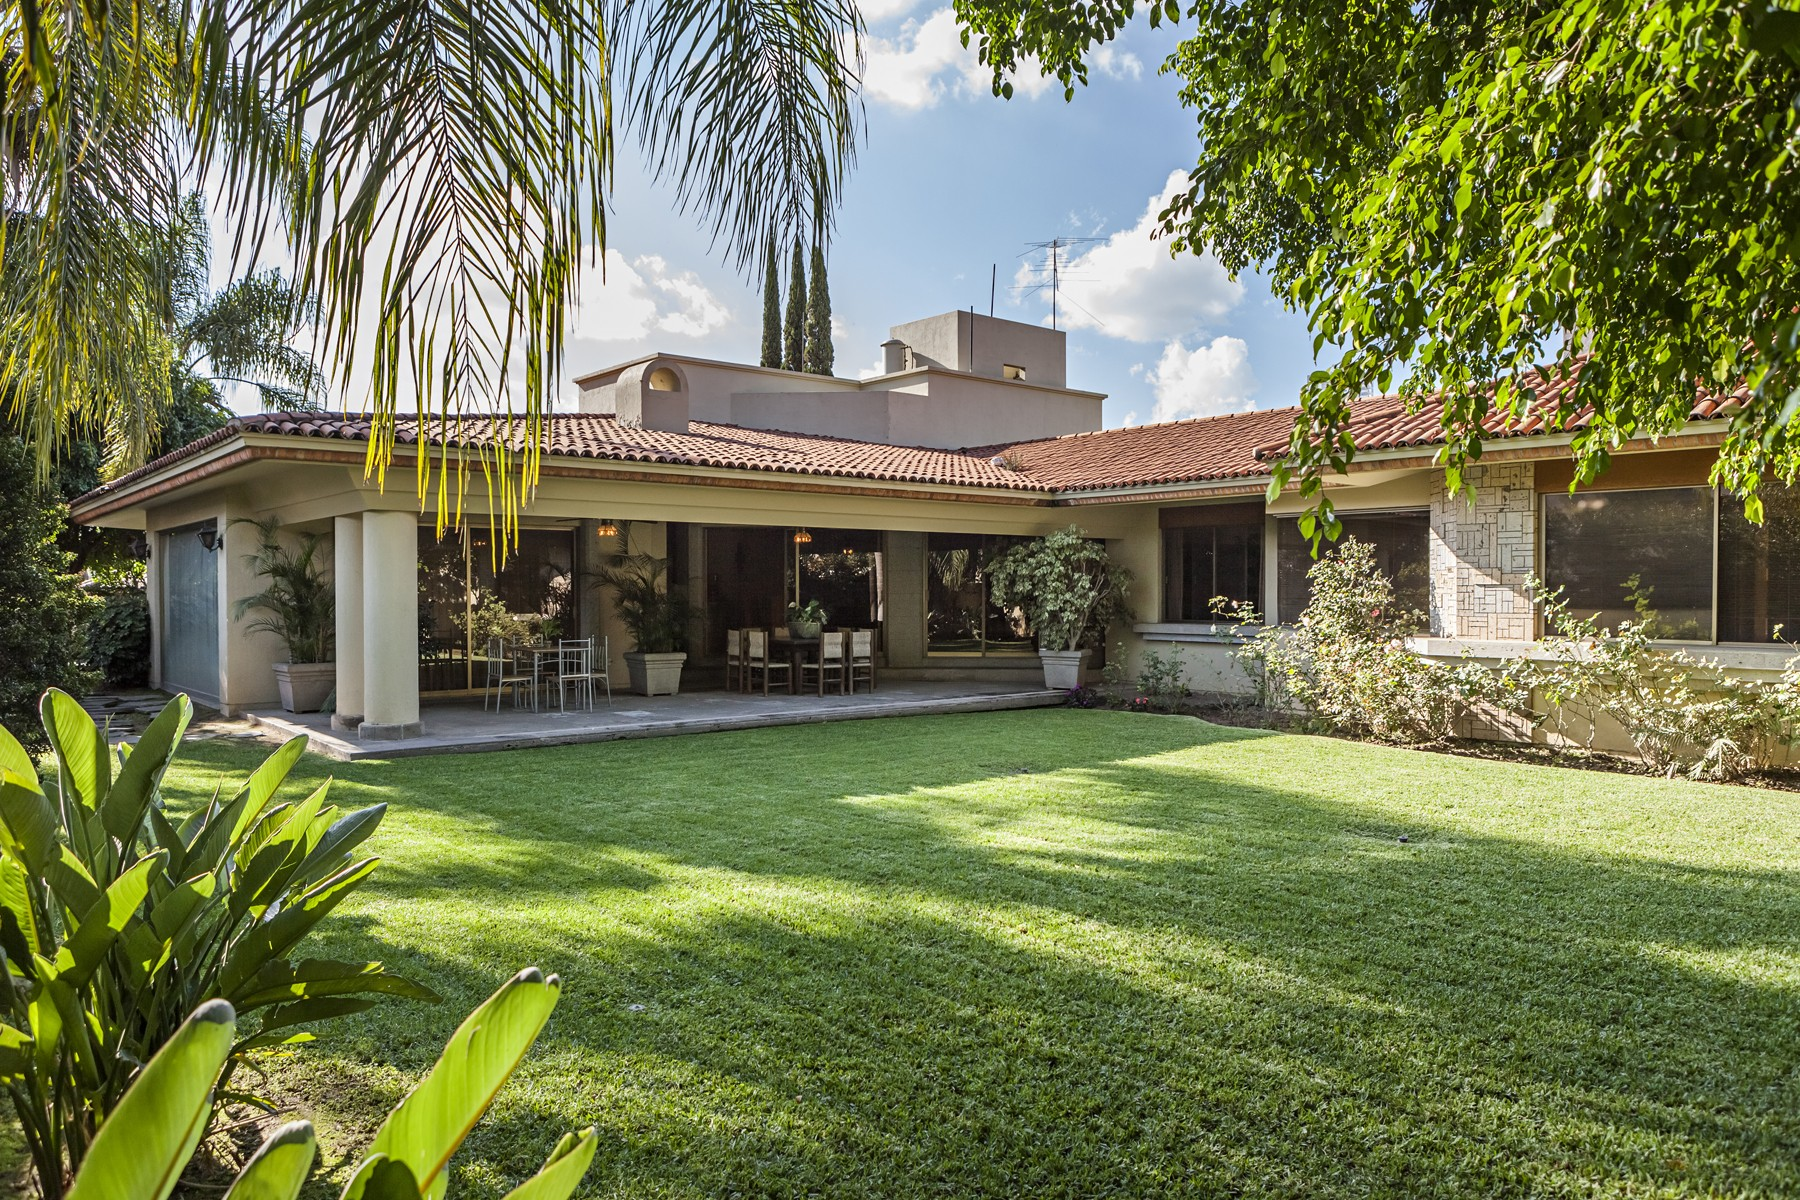 Single Family Home for Sale at Santa Isabel en San Gonzalo, Guadalajara. San Gonzalo Zapopan Zapopan, 45110 Mexico